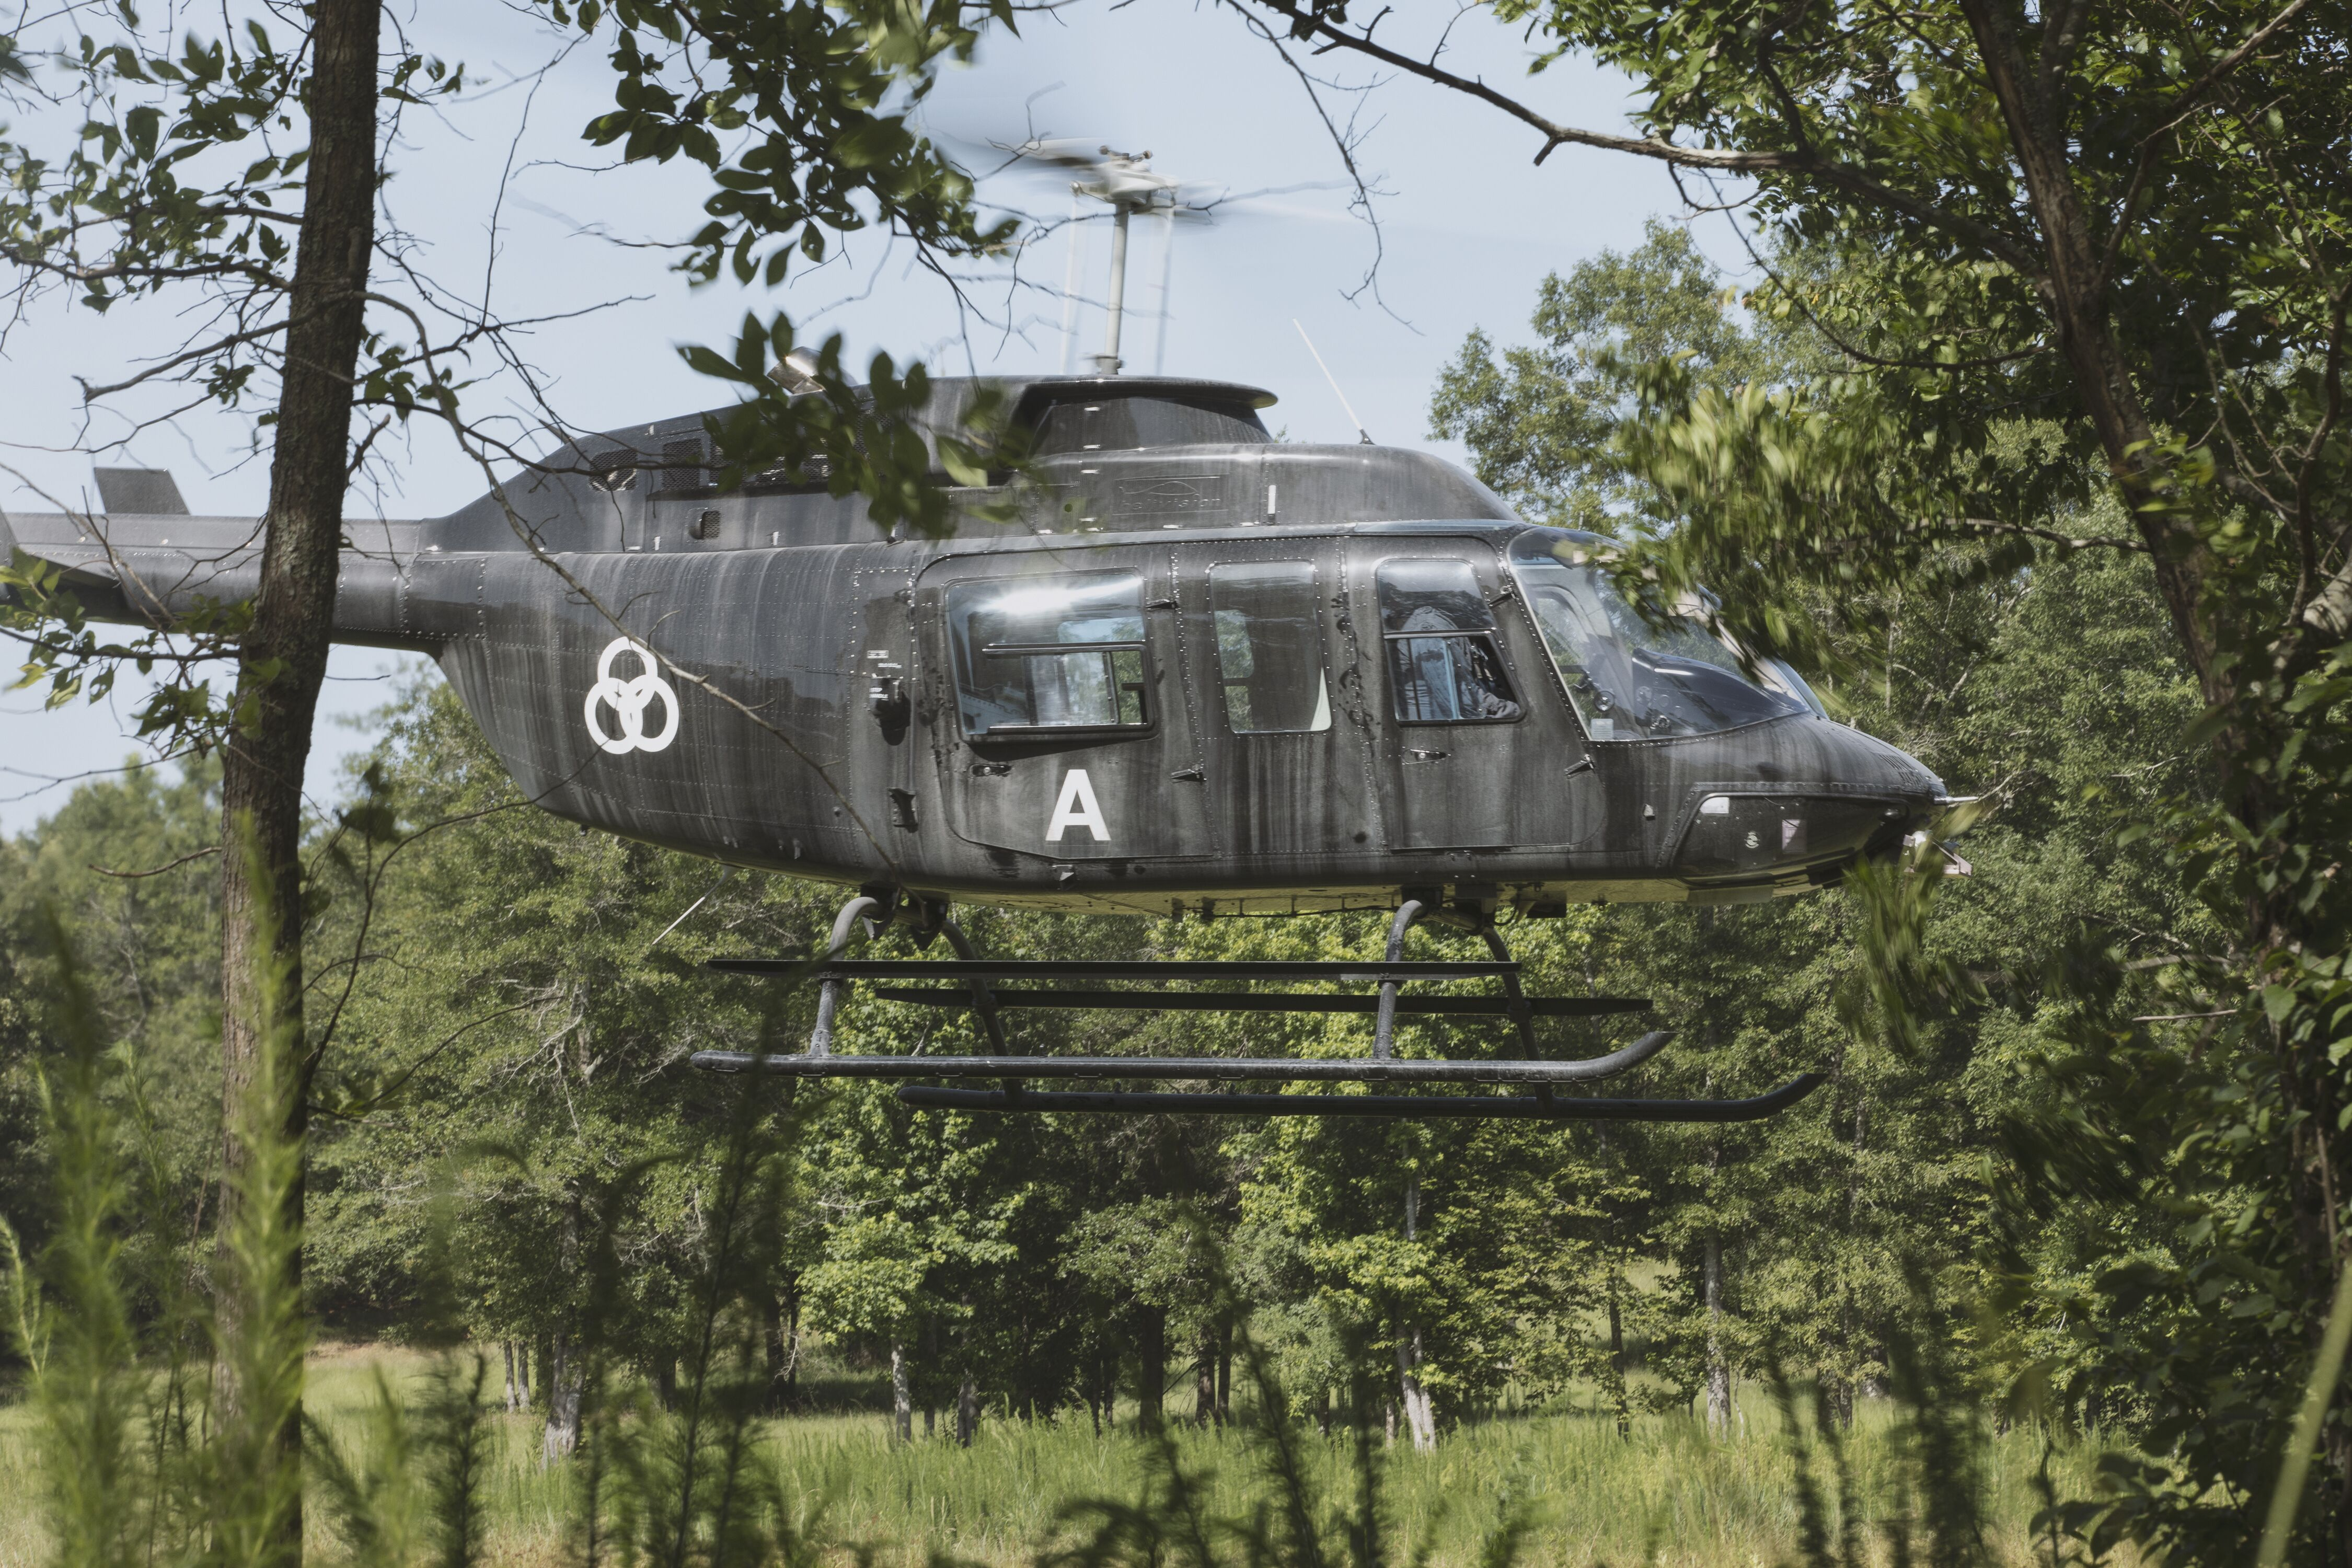 The Walking Dead Helicopter